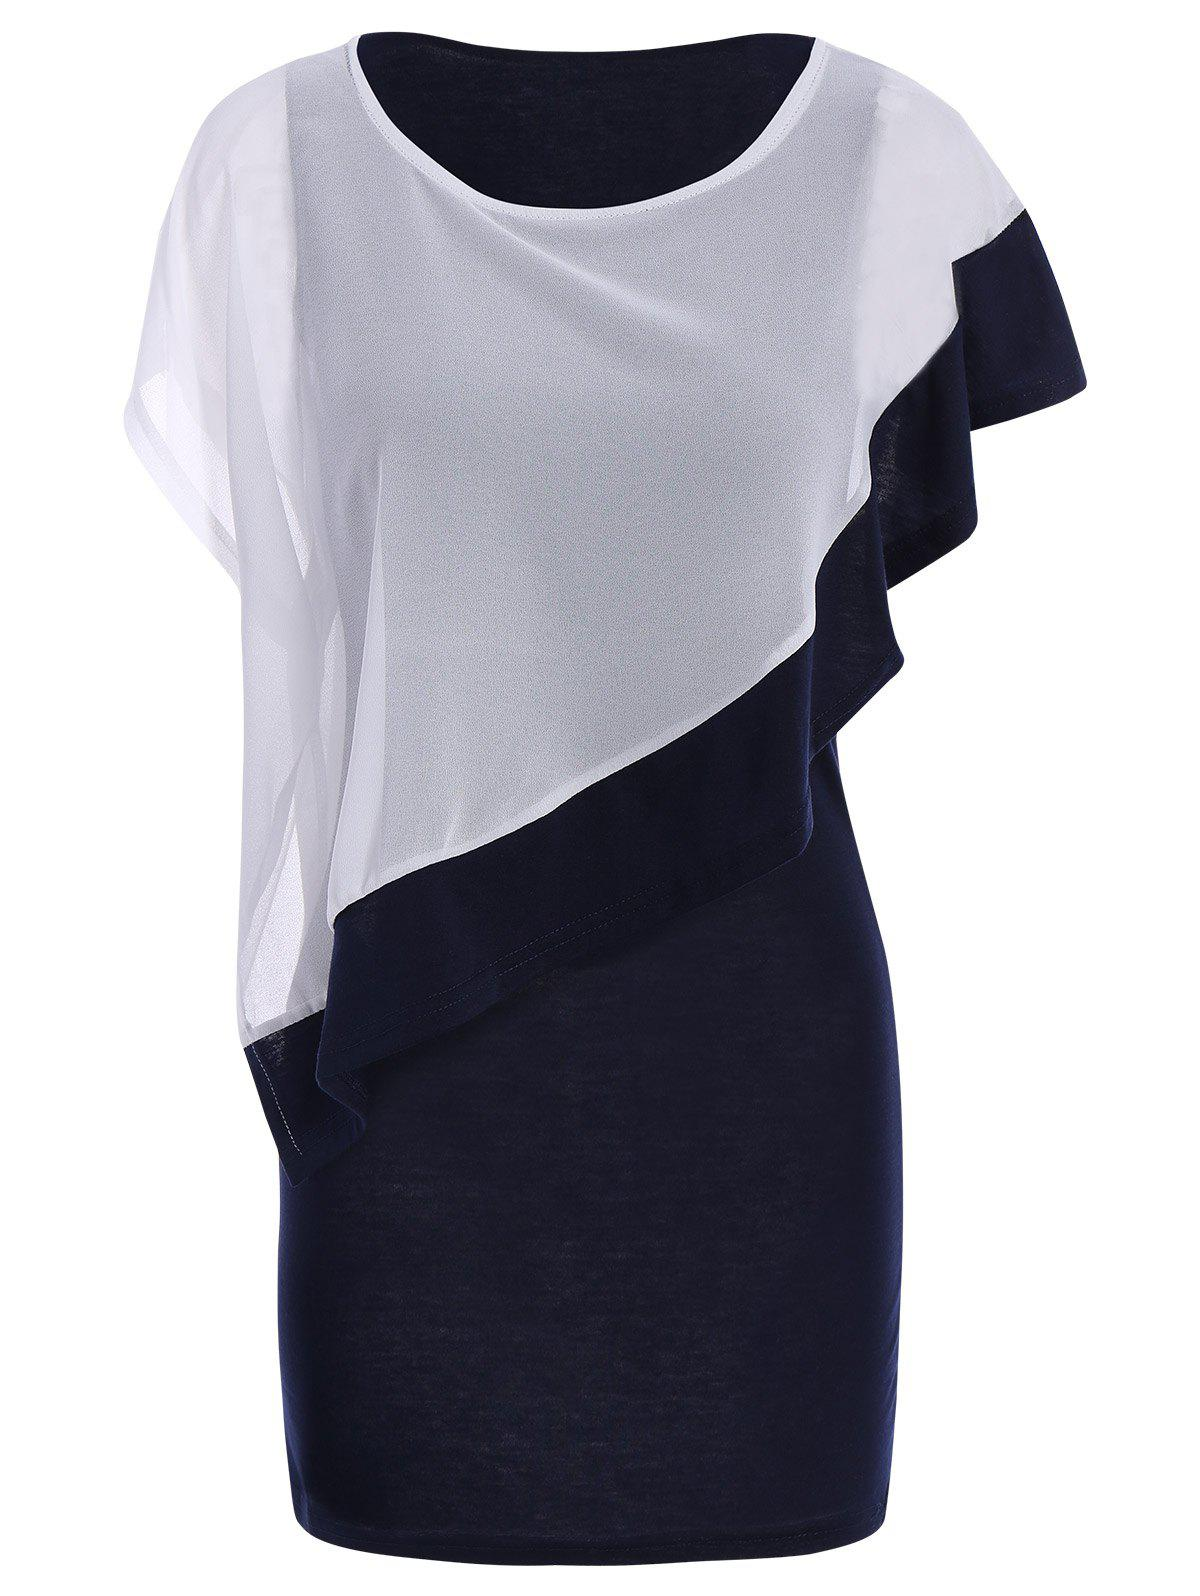 Refreshing Style Scoop Neck Short Sleeves Chiffon Color Block Women's Dress - COLORMIX L